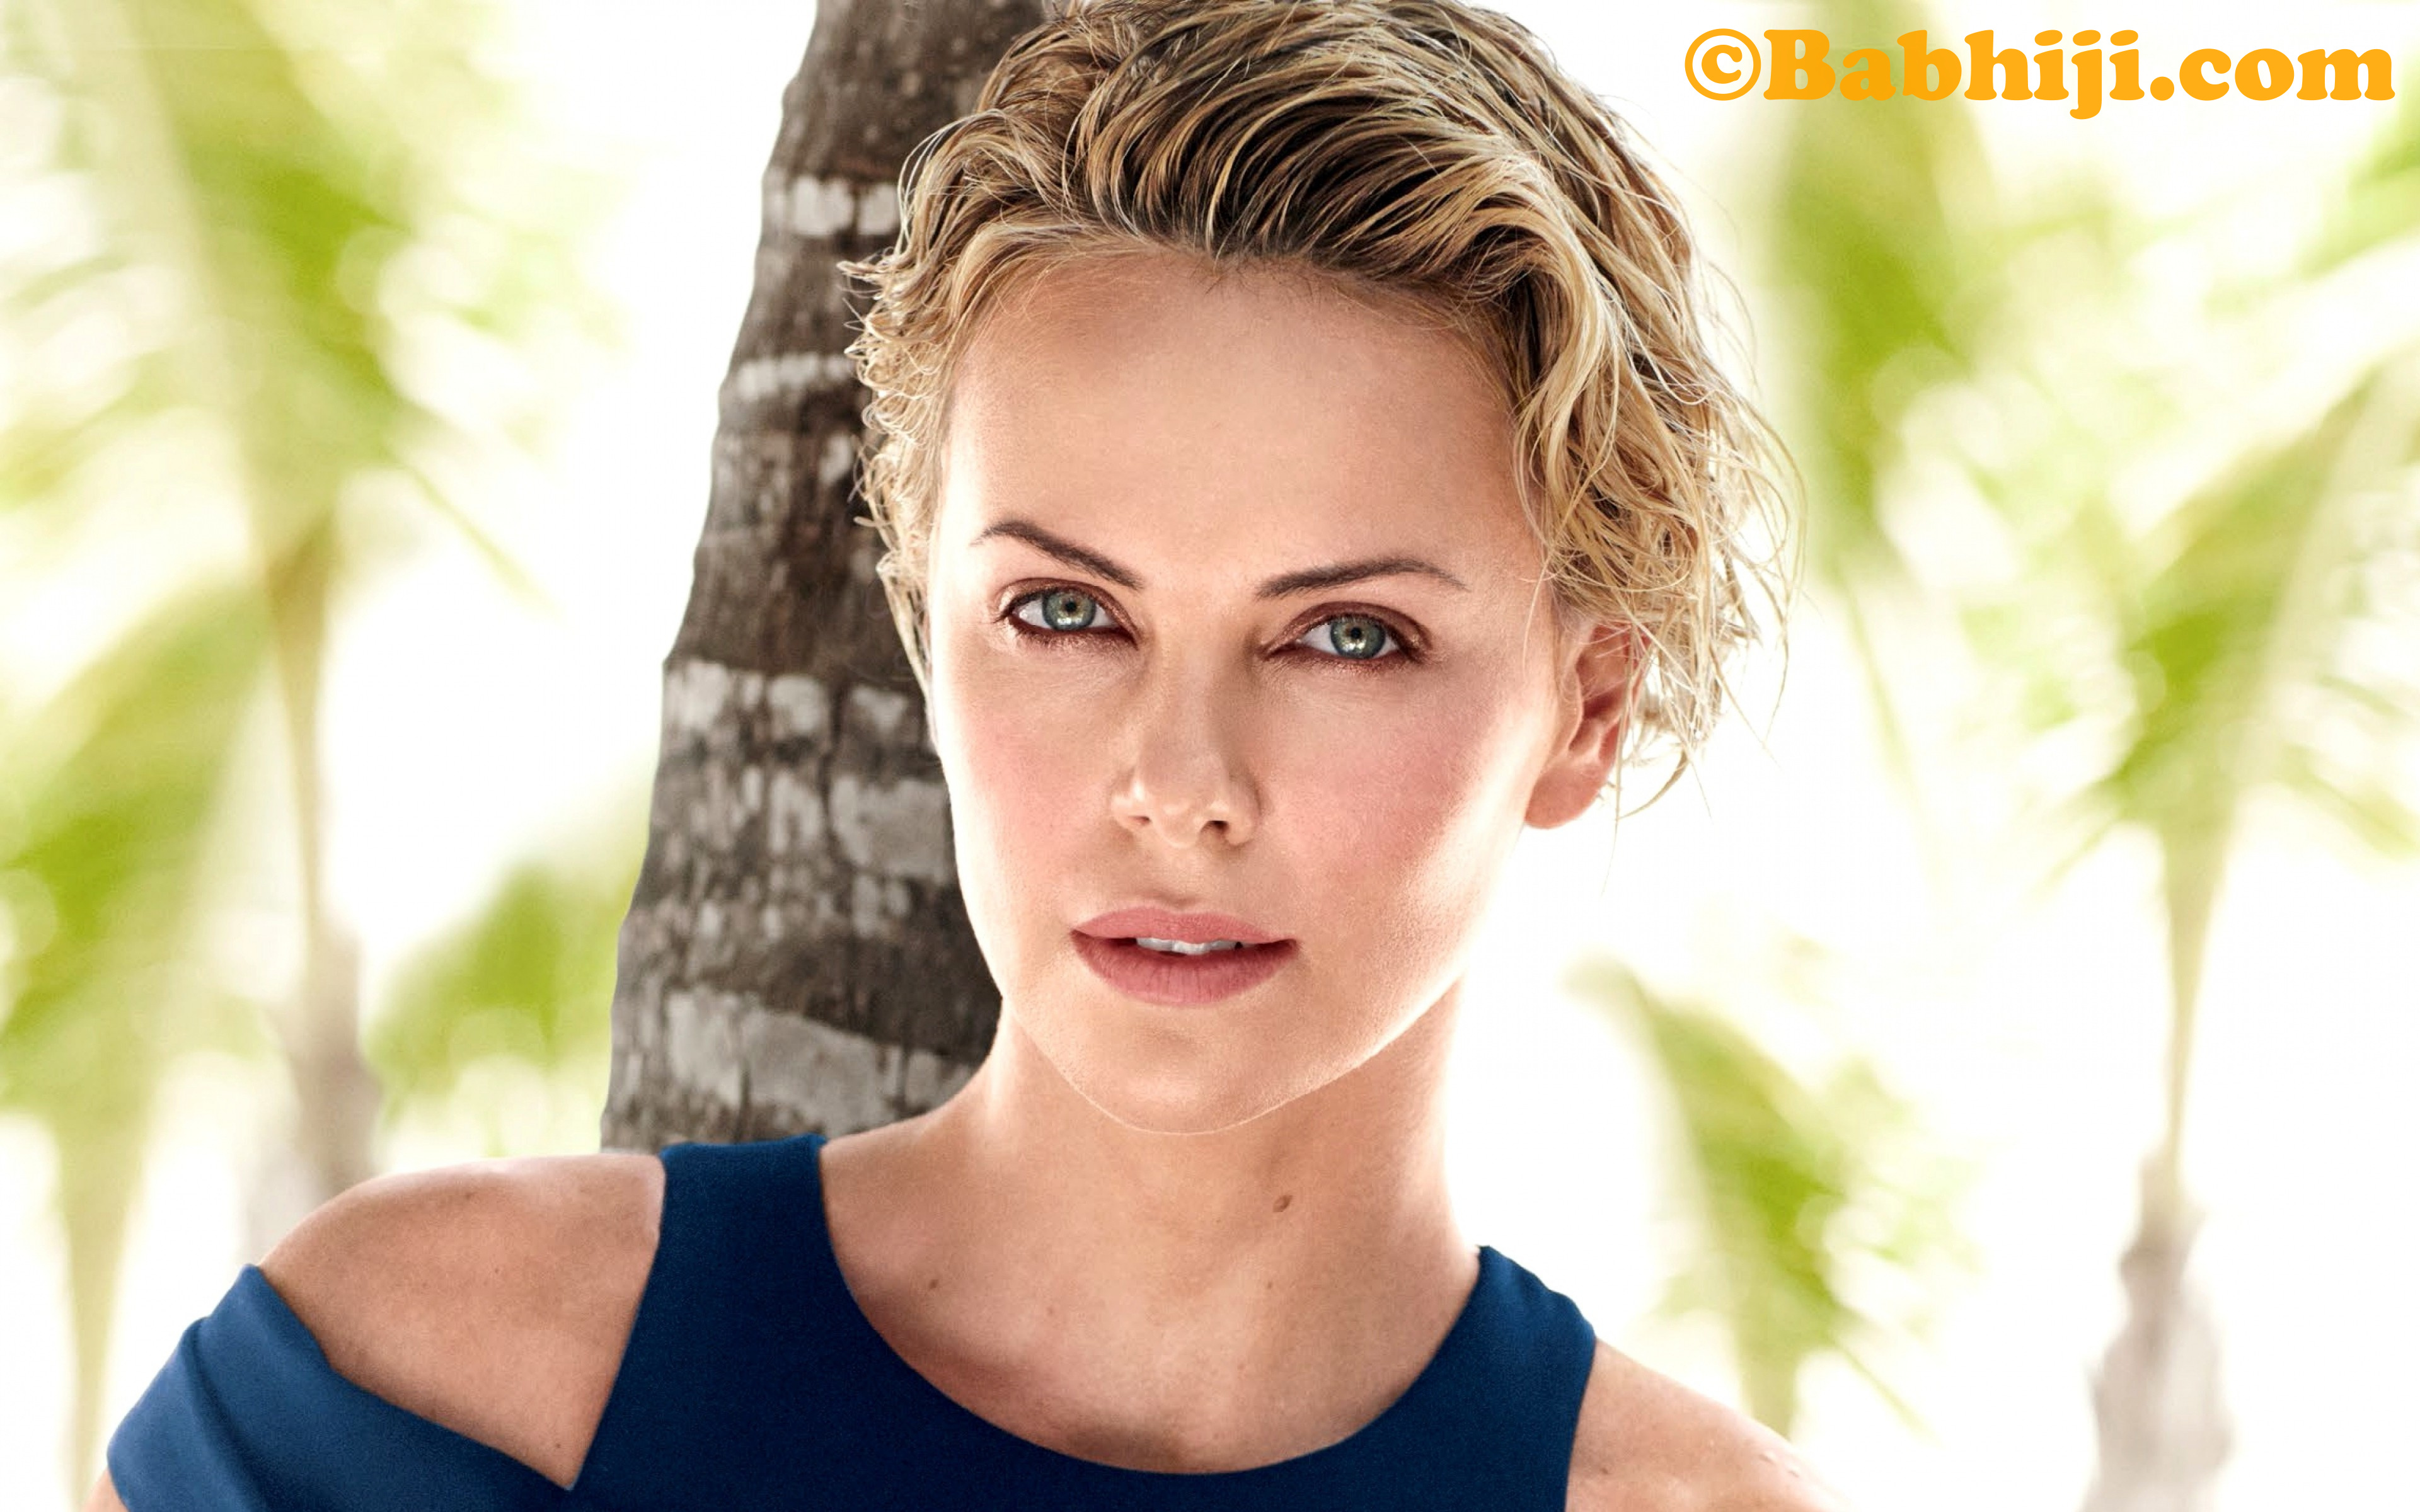 Charlize Theron, Charlize Theron Images, Charlize Theron Wallpapers